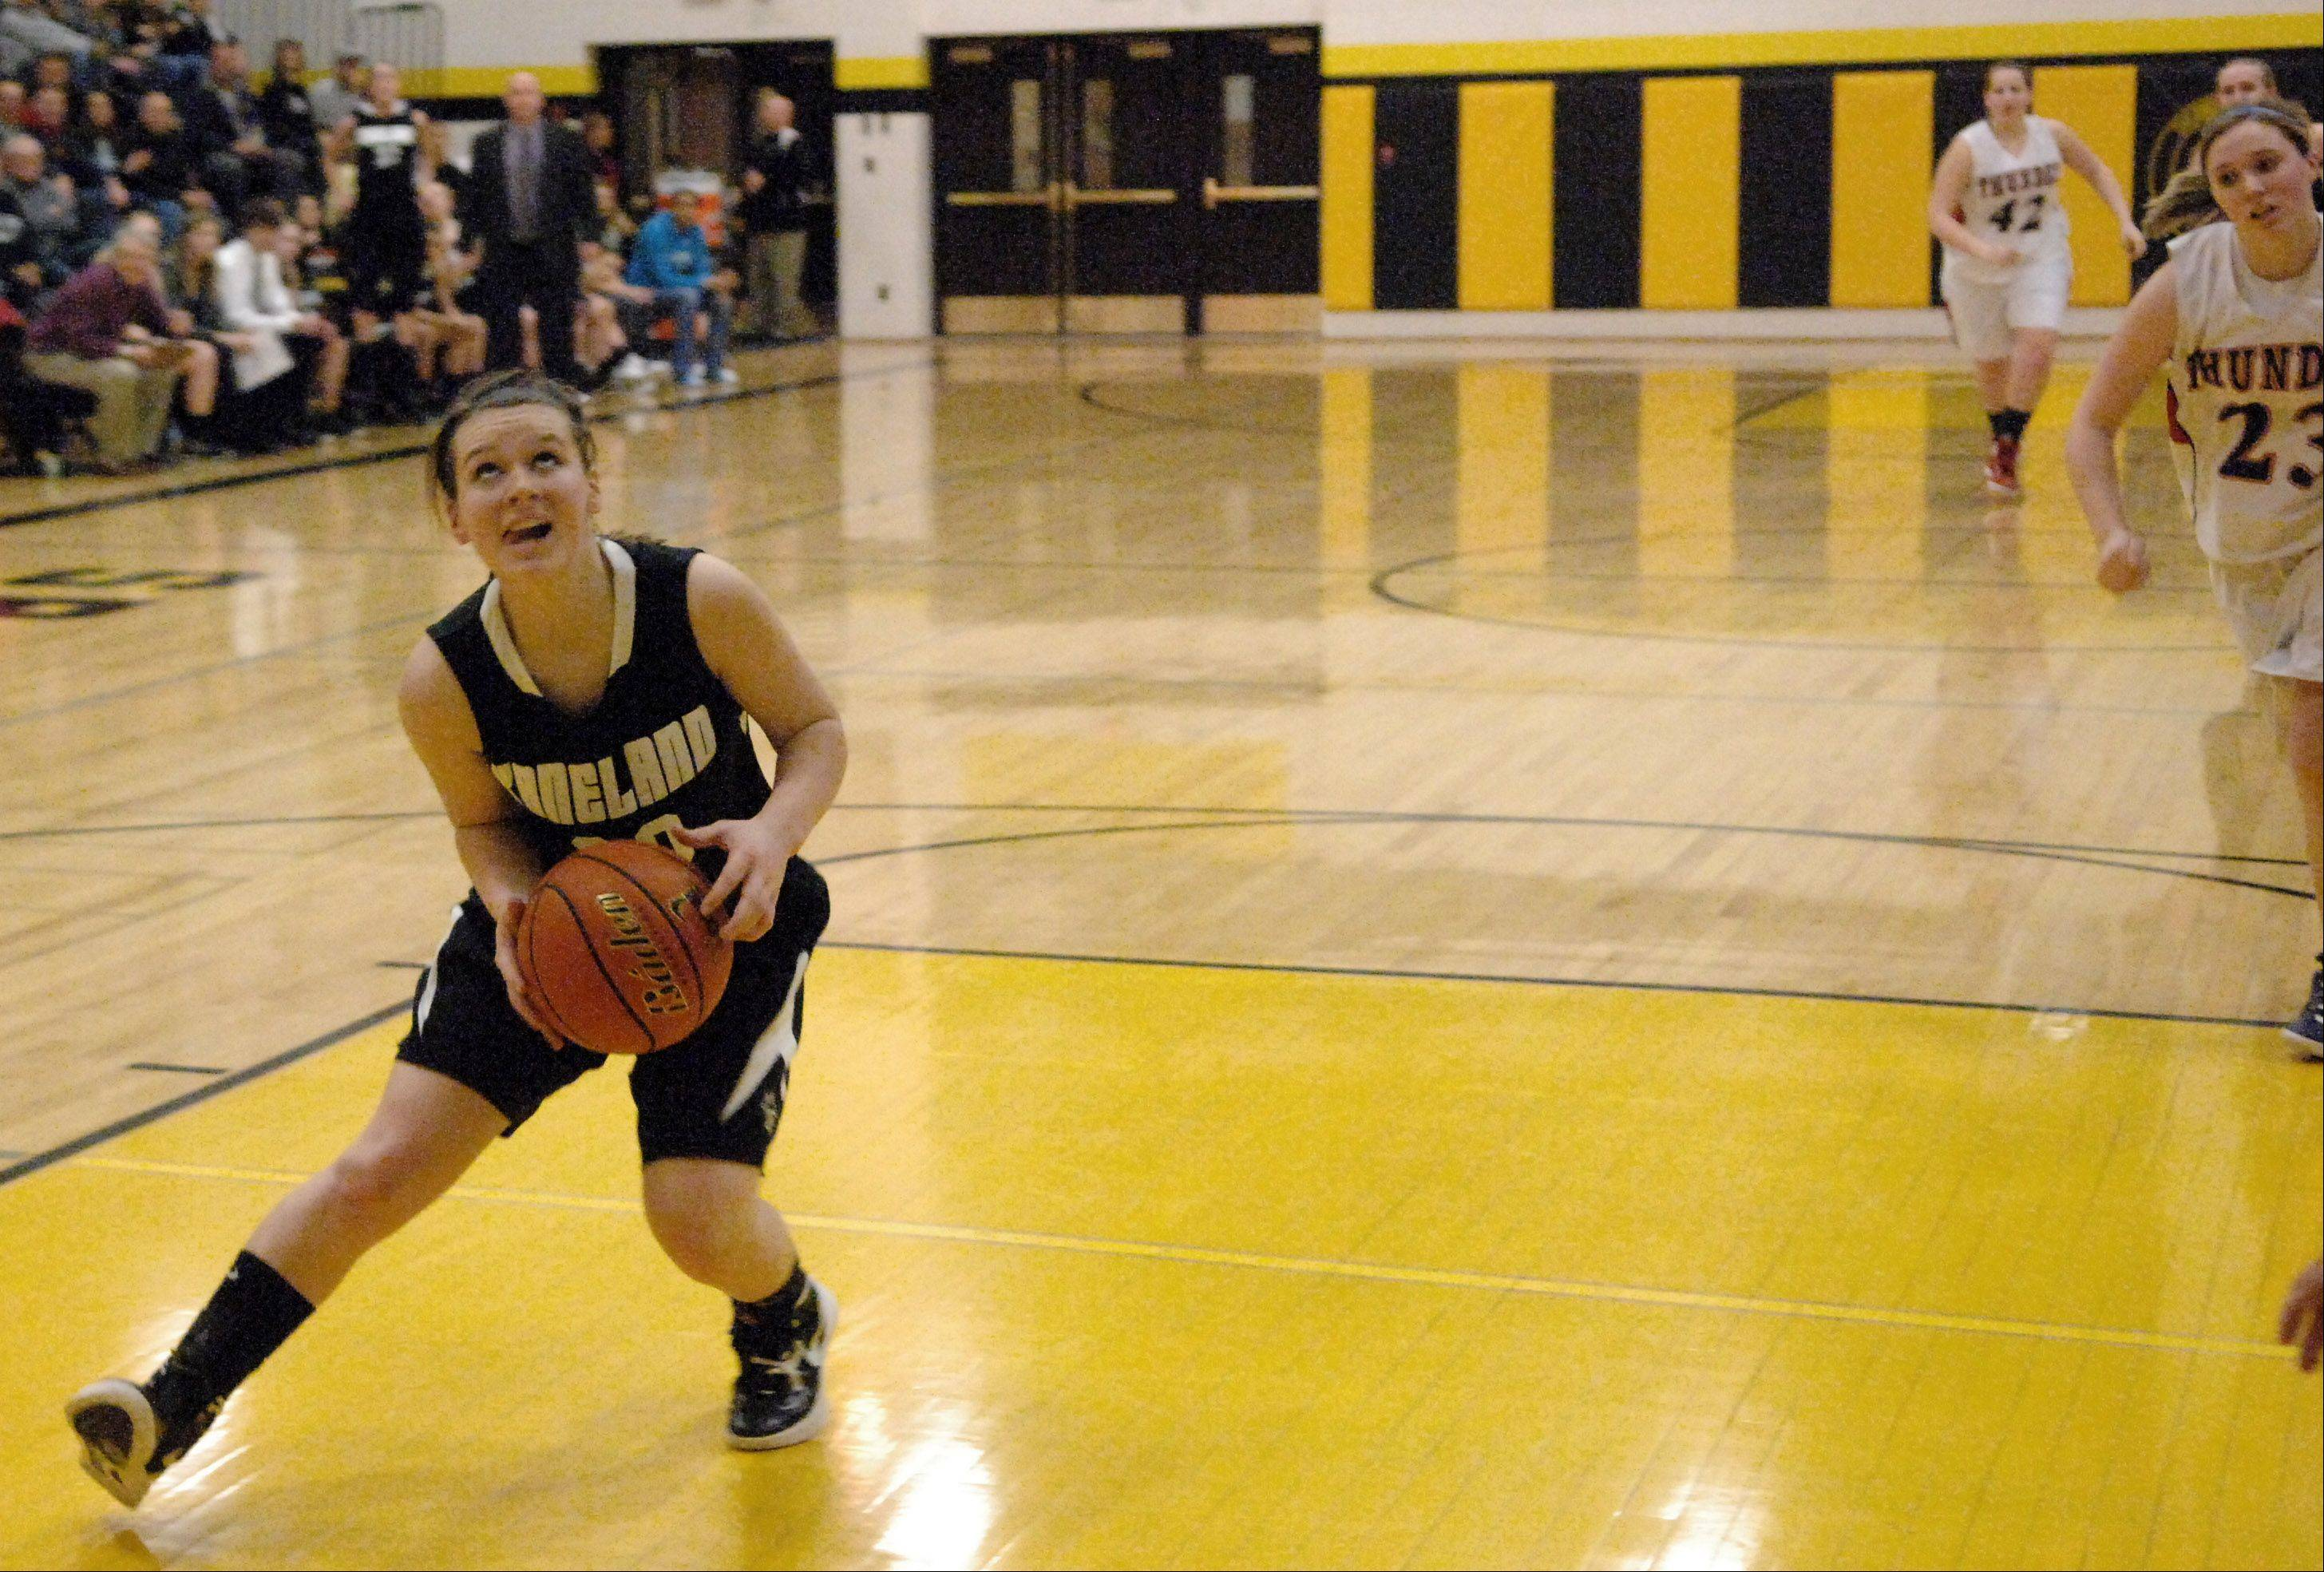 Images from the Kaneland vs. Belvidere North girls sectional basketball game Thursday, February 23, 2012.